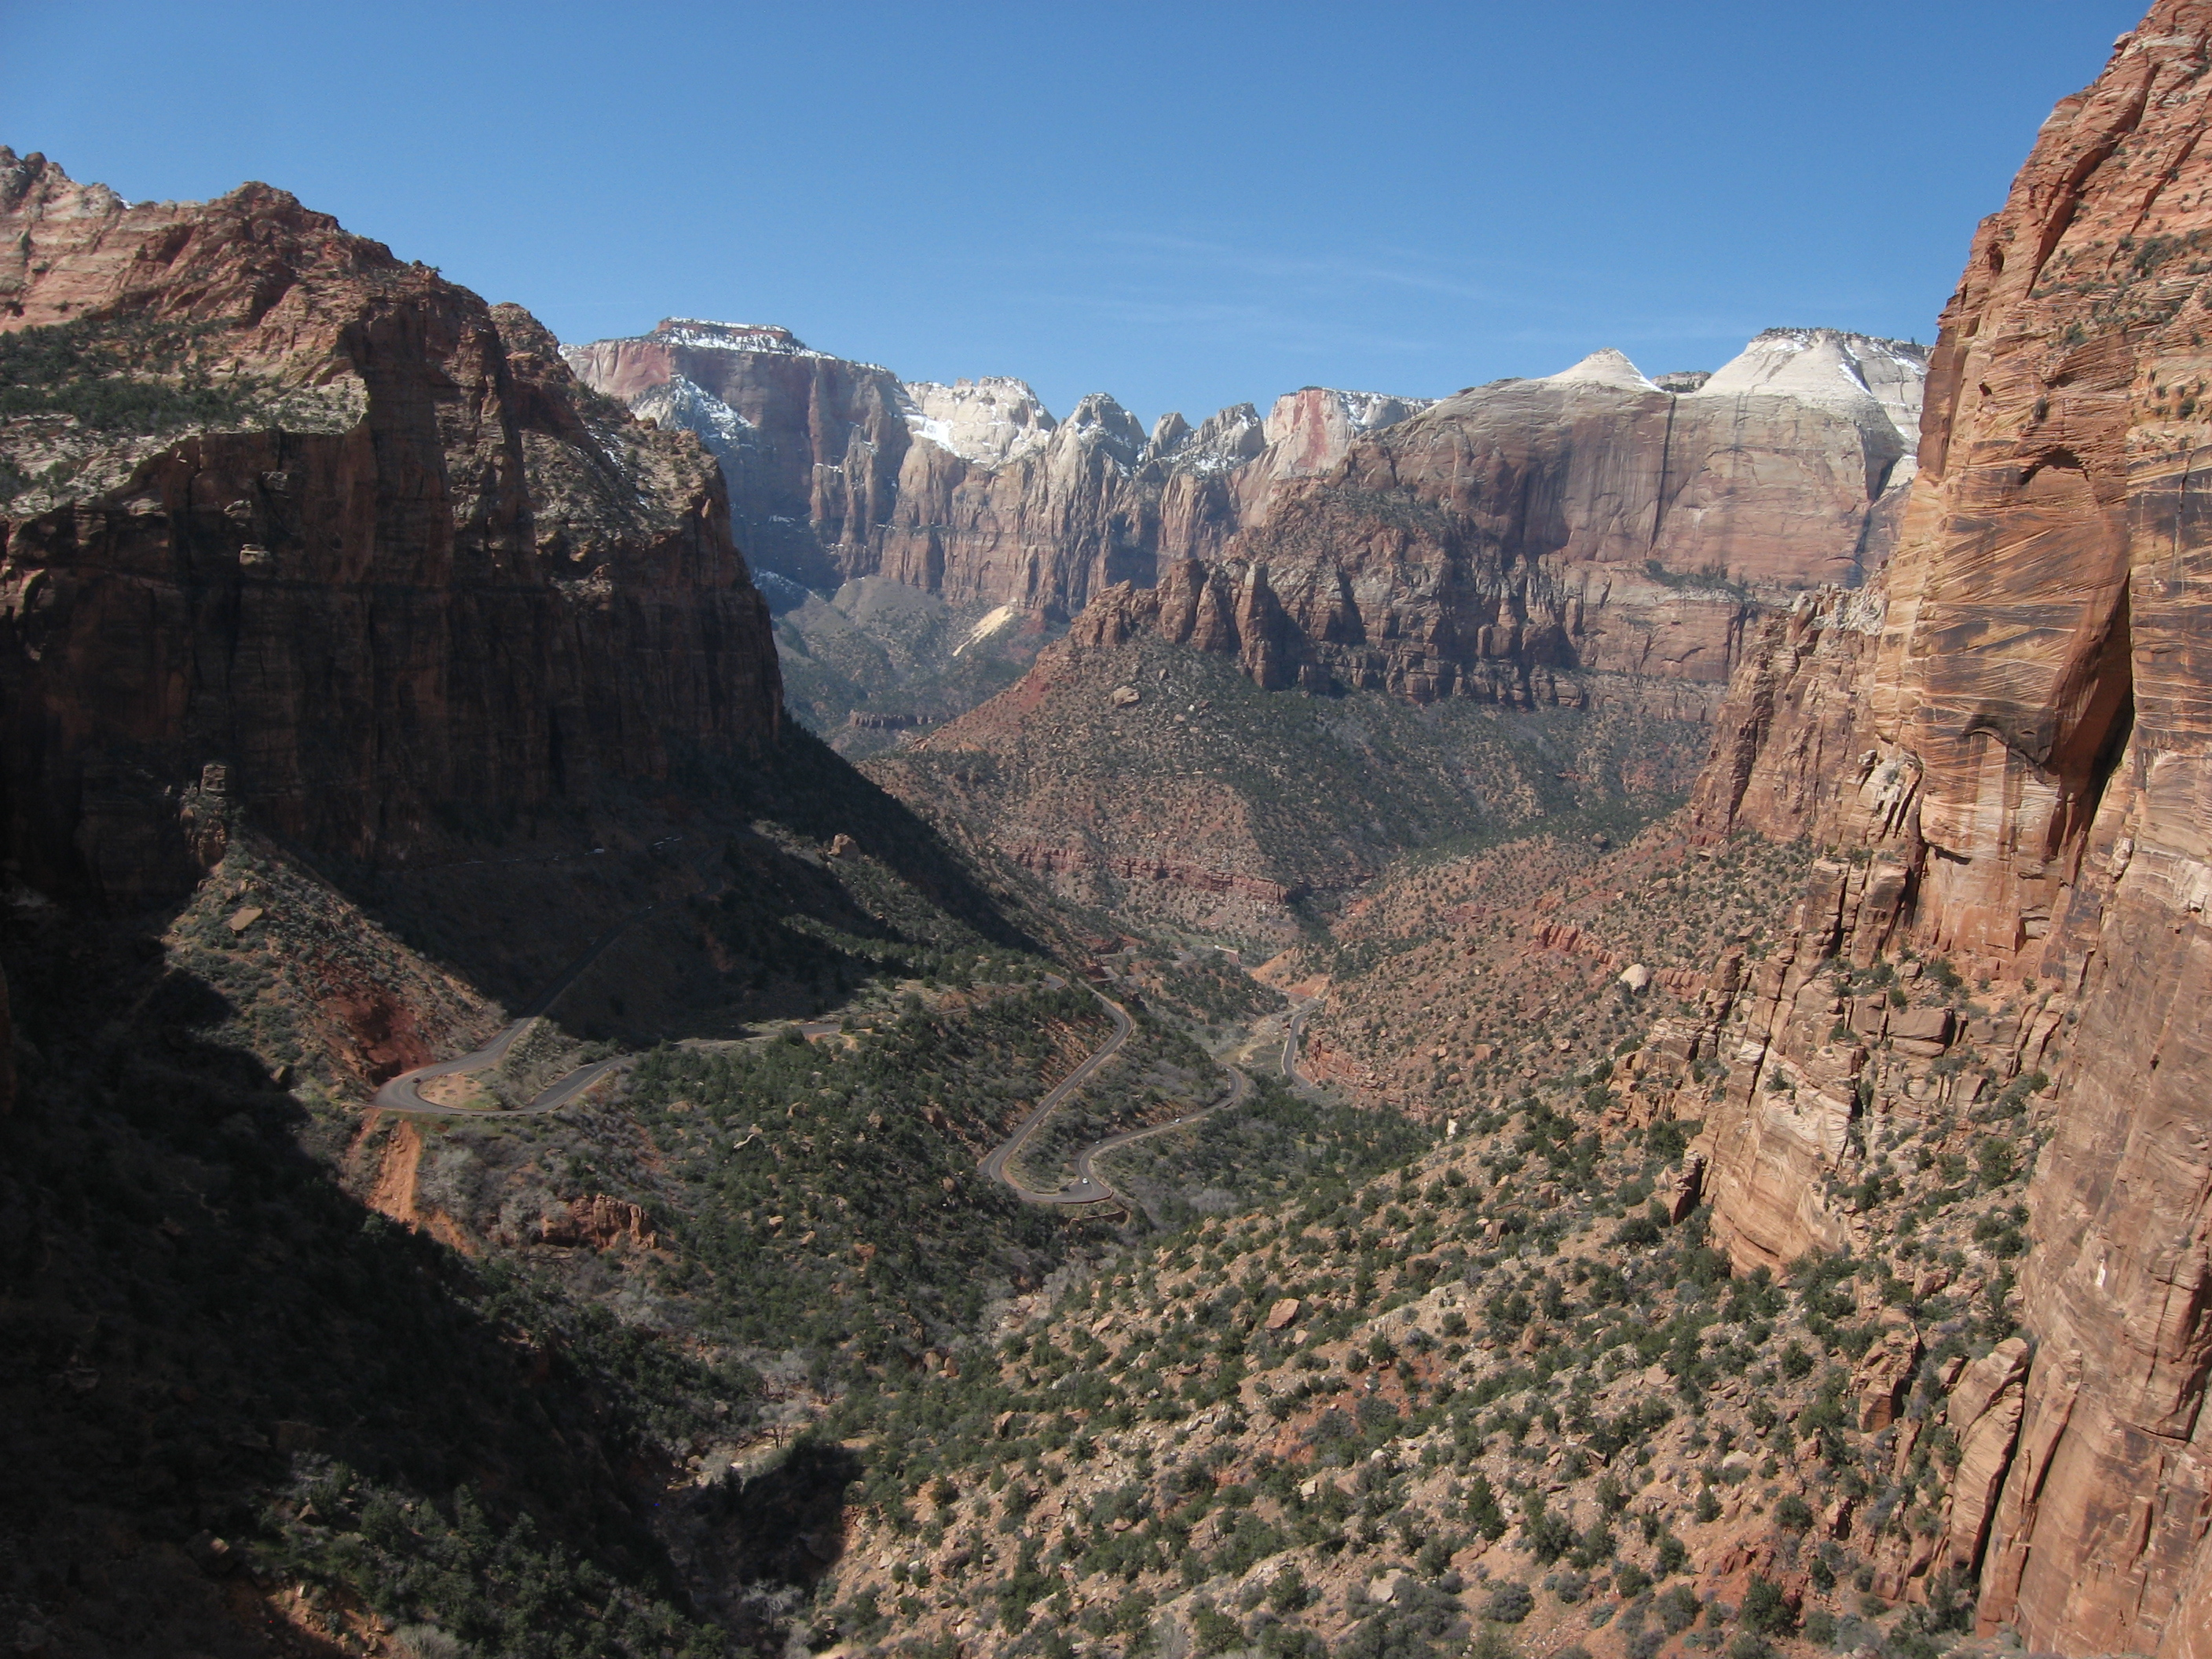 File:Canyon Overlook Trail, Zion National Park (5521134717 ... | 2816 x 2112 jpeg 3233kB